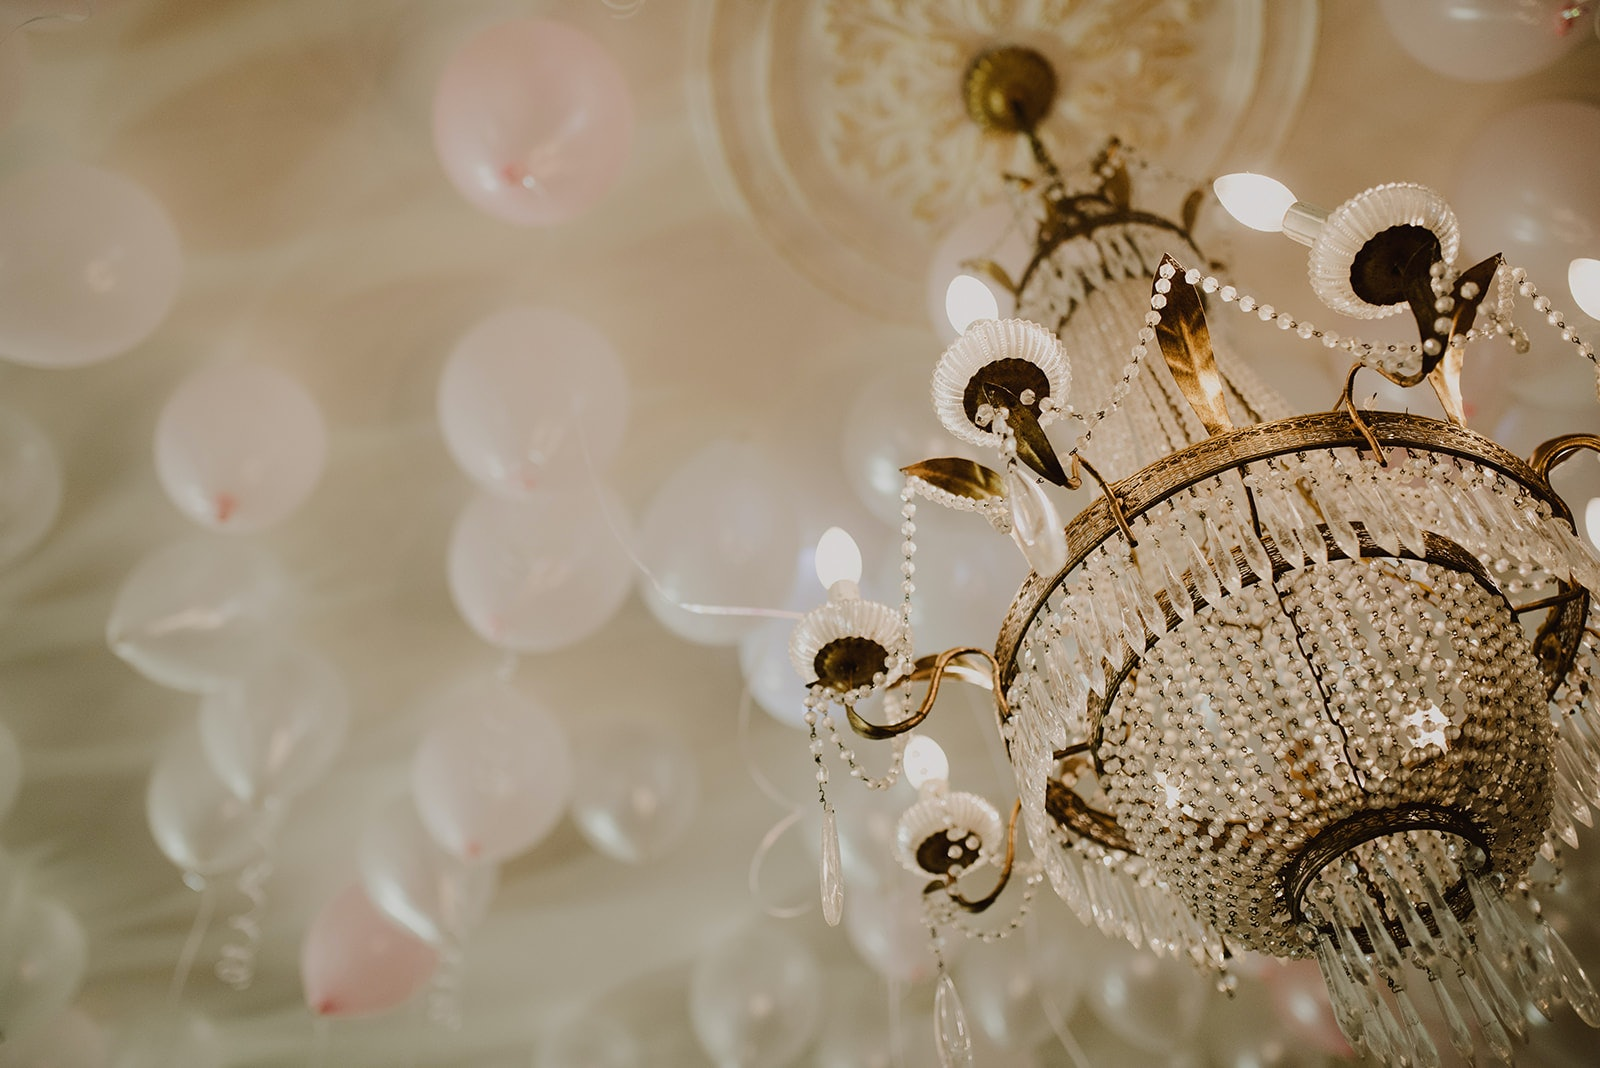 Chandelier with balloons in background